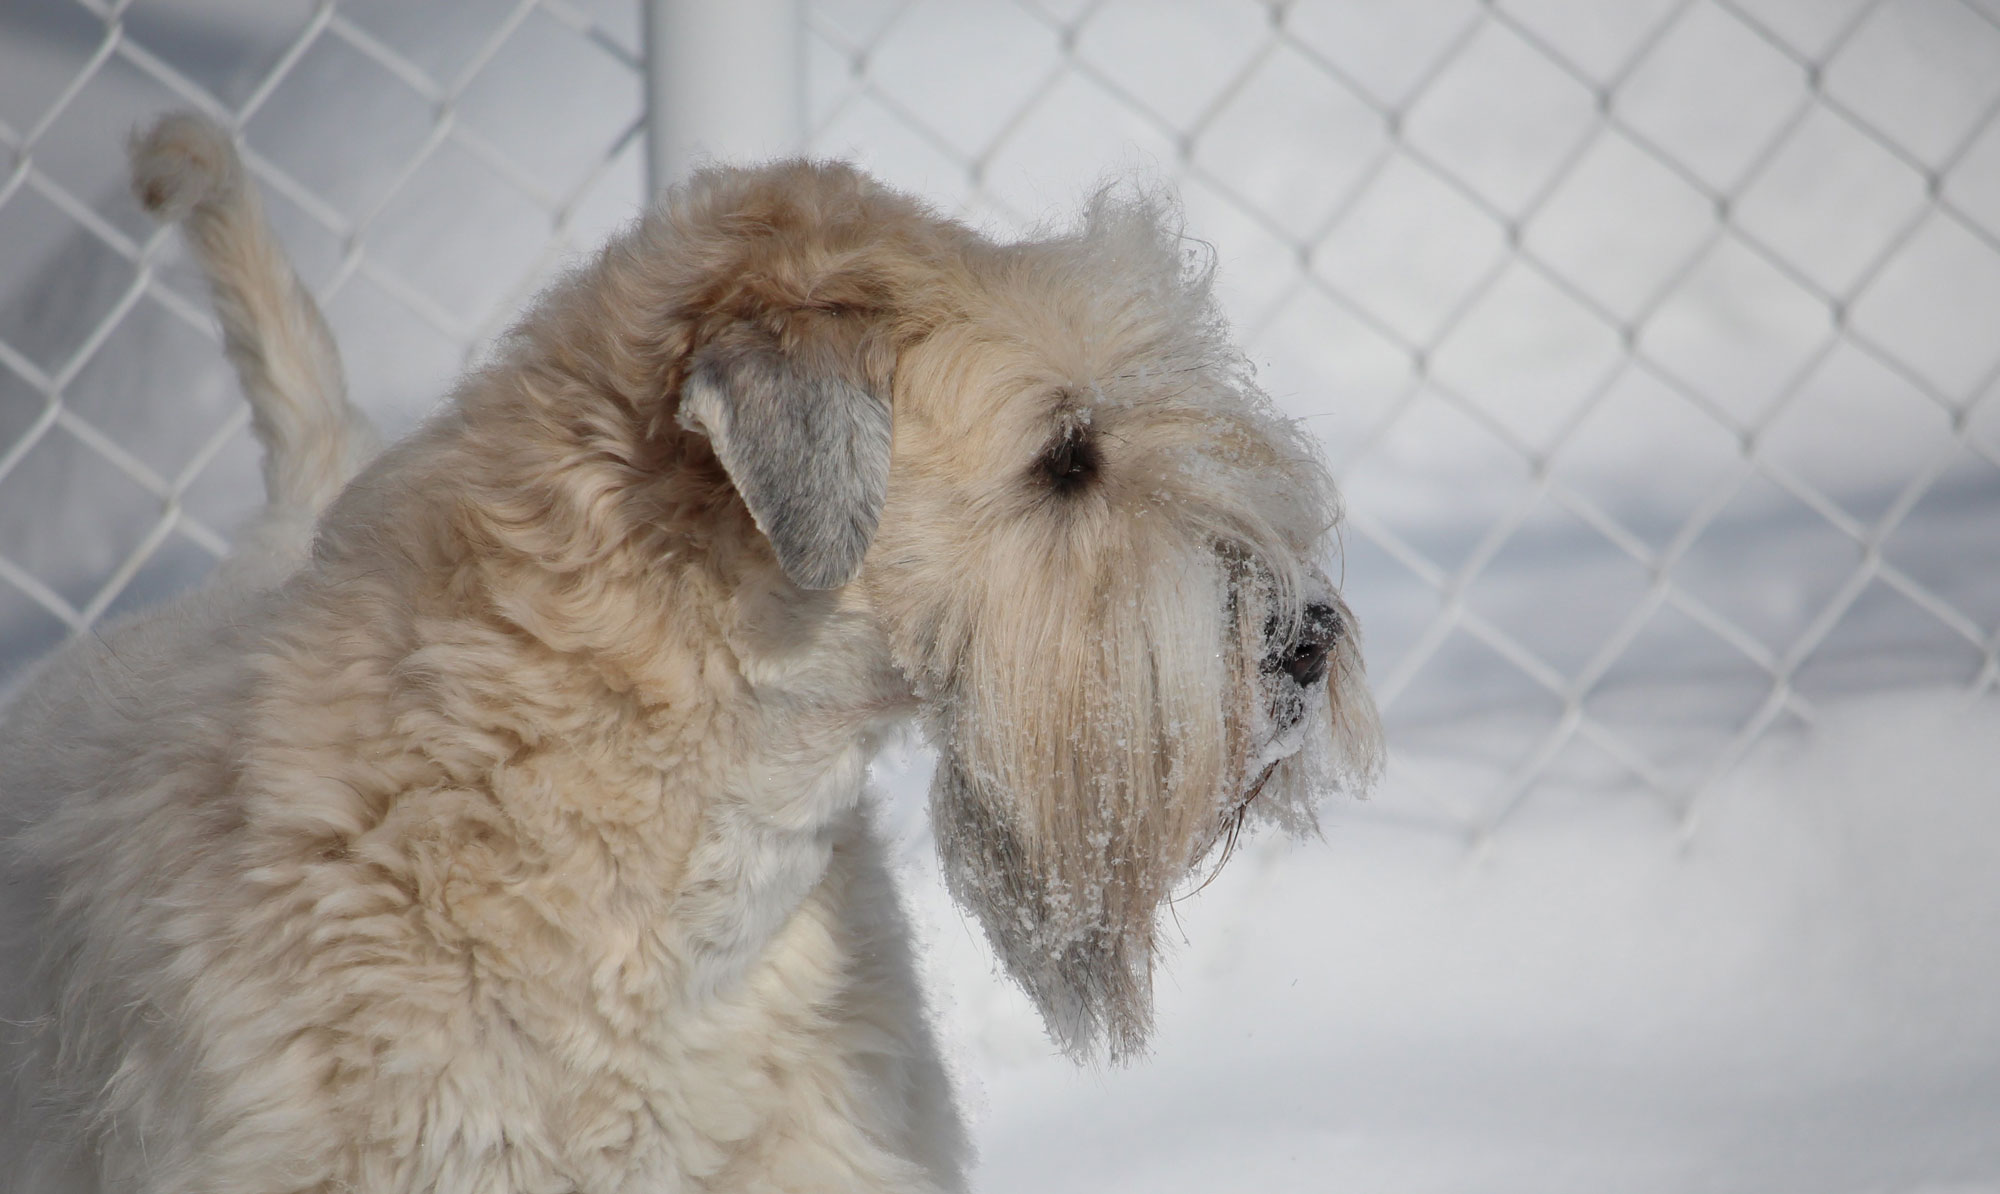 SCWTAC – The Soft-Coated Wheaten Terrier Association of Canada